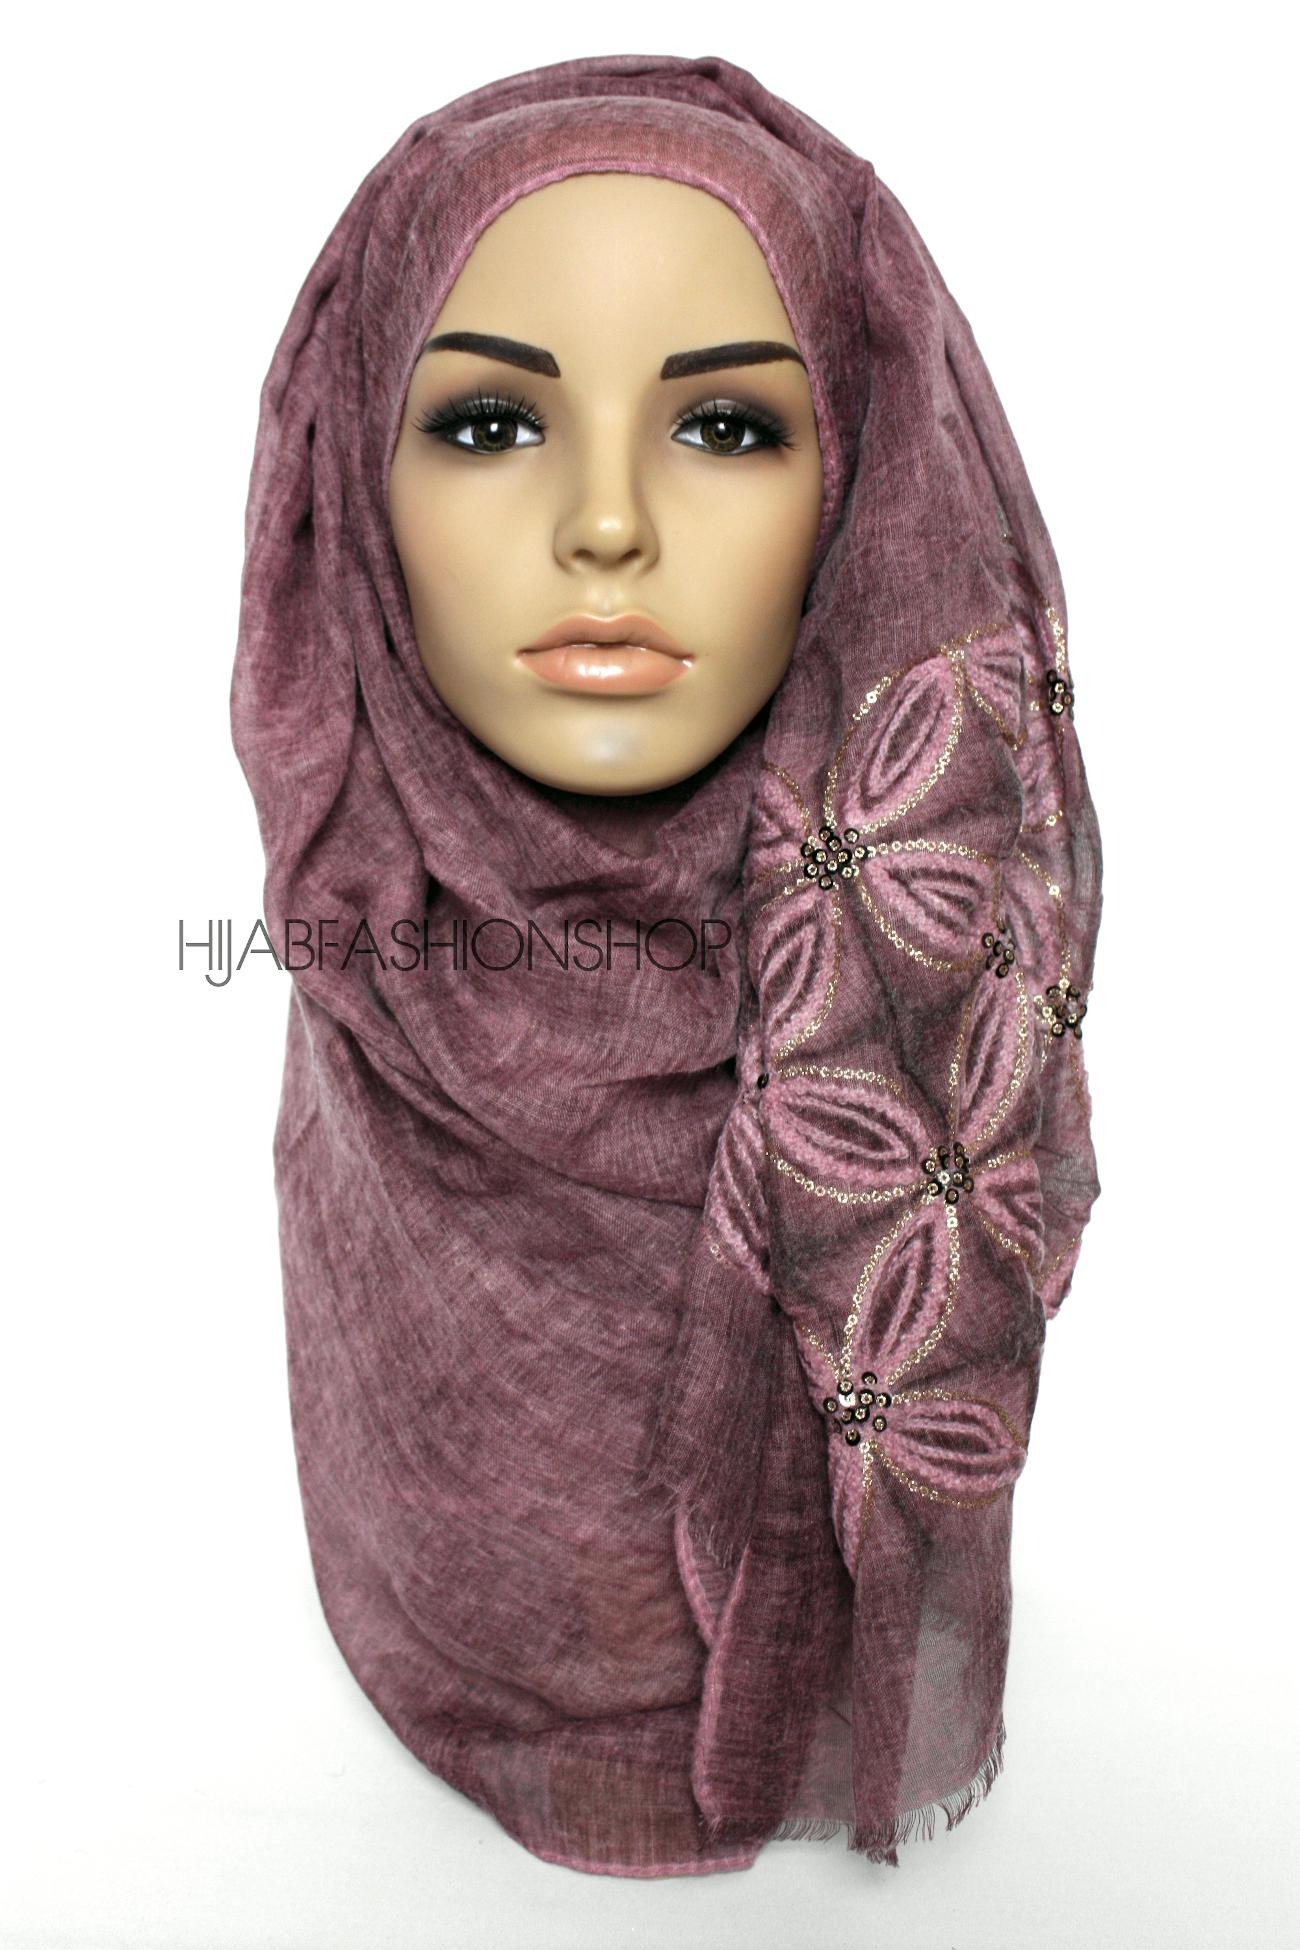 maroon linen look hijab with lilies embroidery and sequins